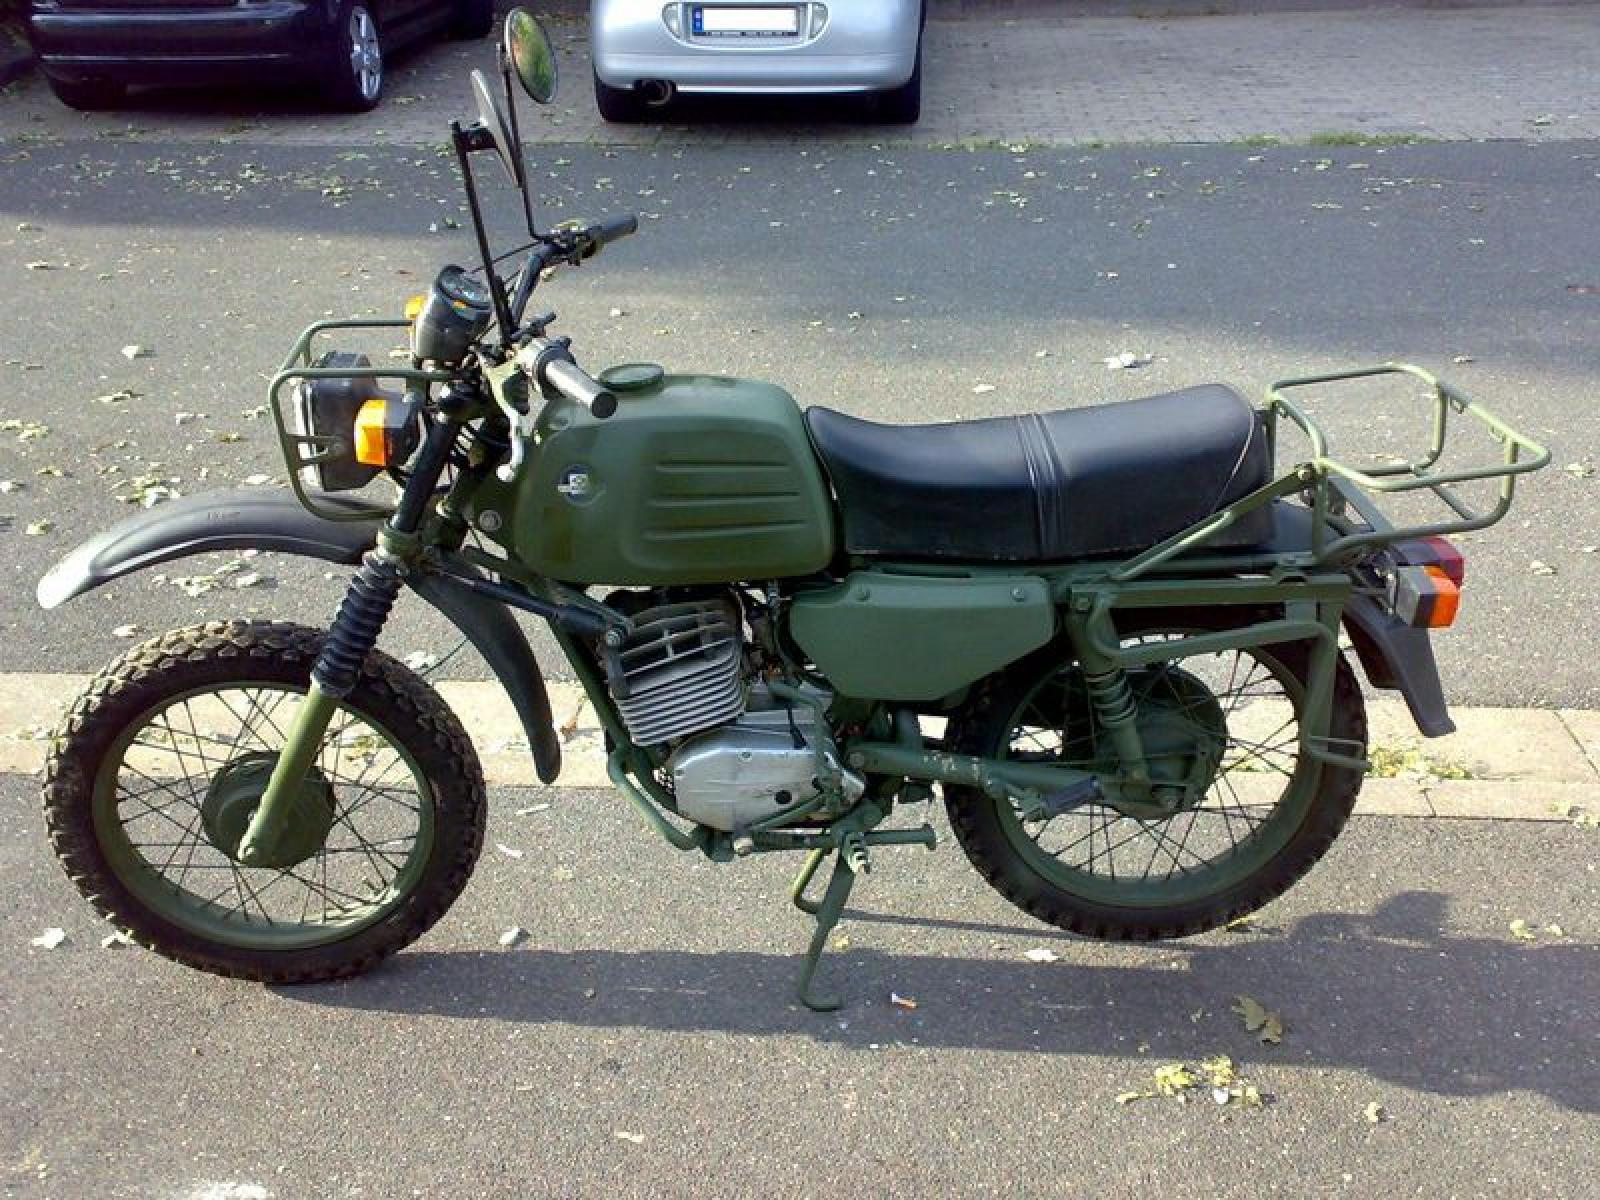 Hercules K 125 Military 1988 images #74644